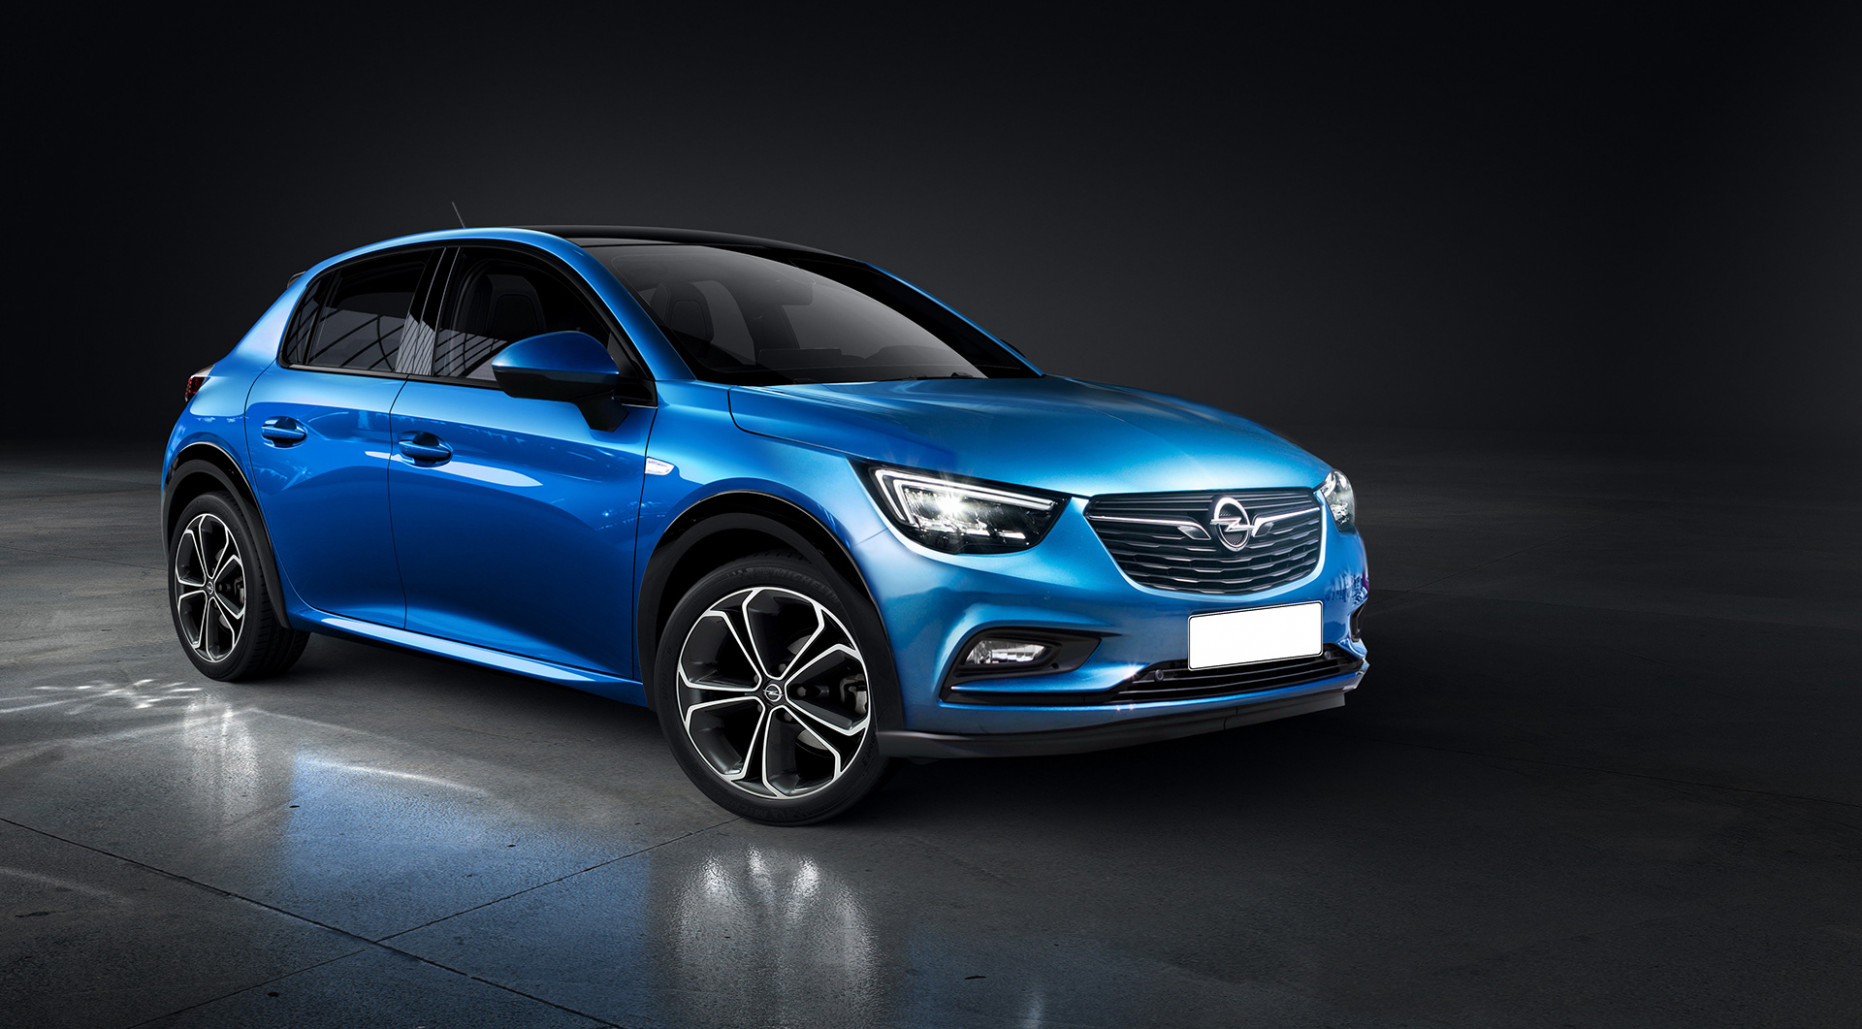 This 8 Opel Corsa Rendering Has Crossover Inspiration ..